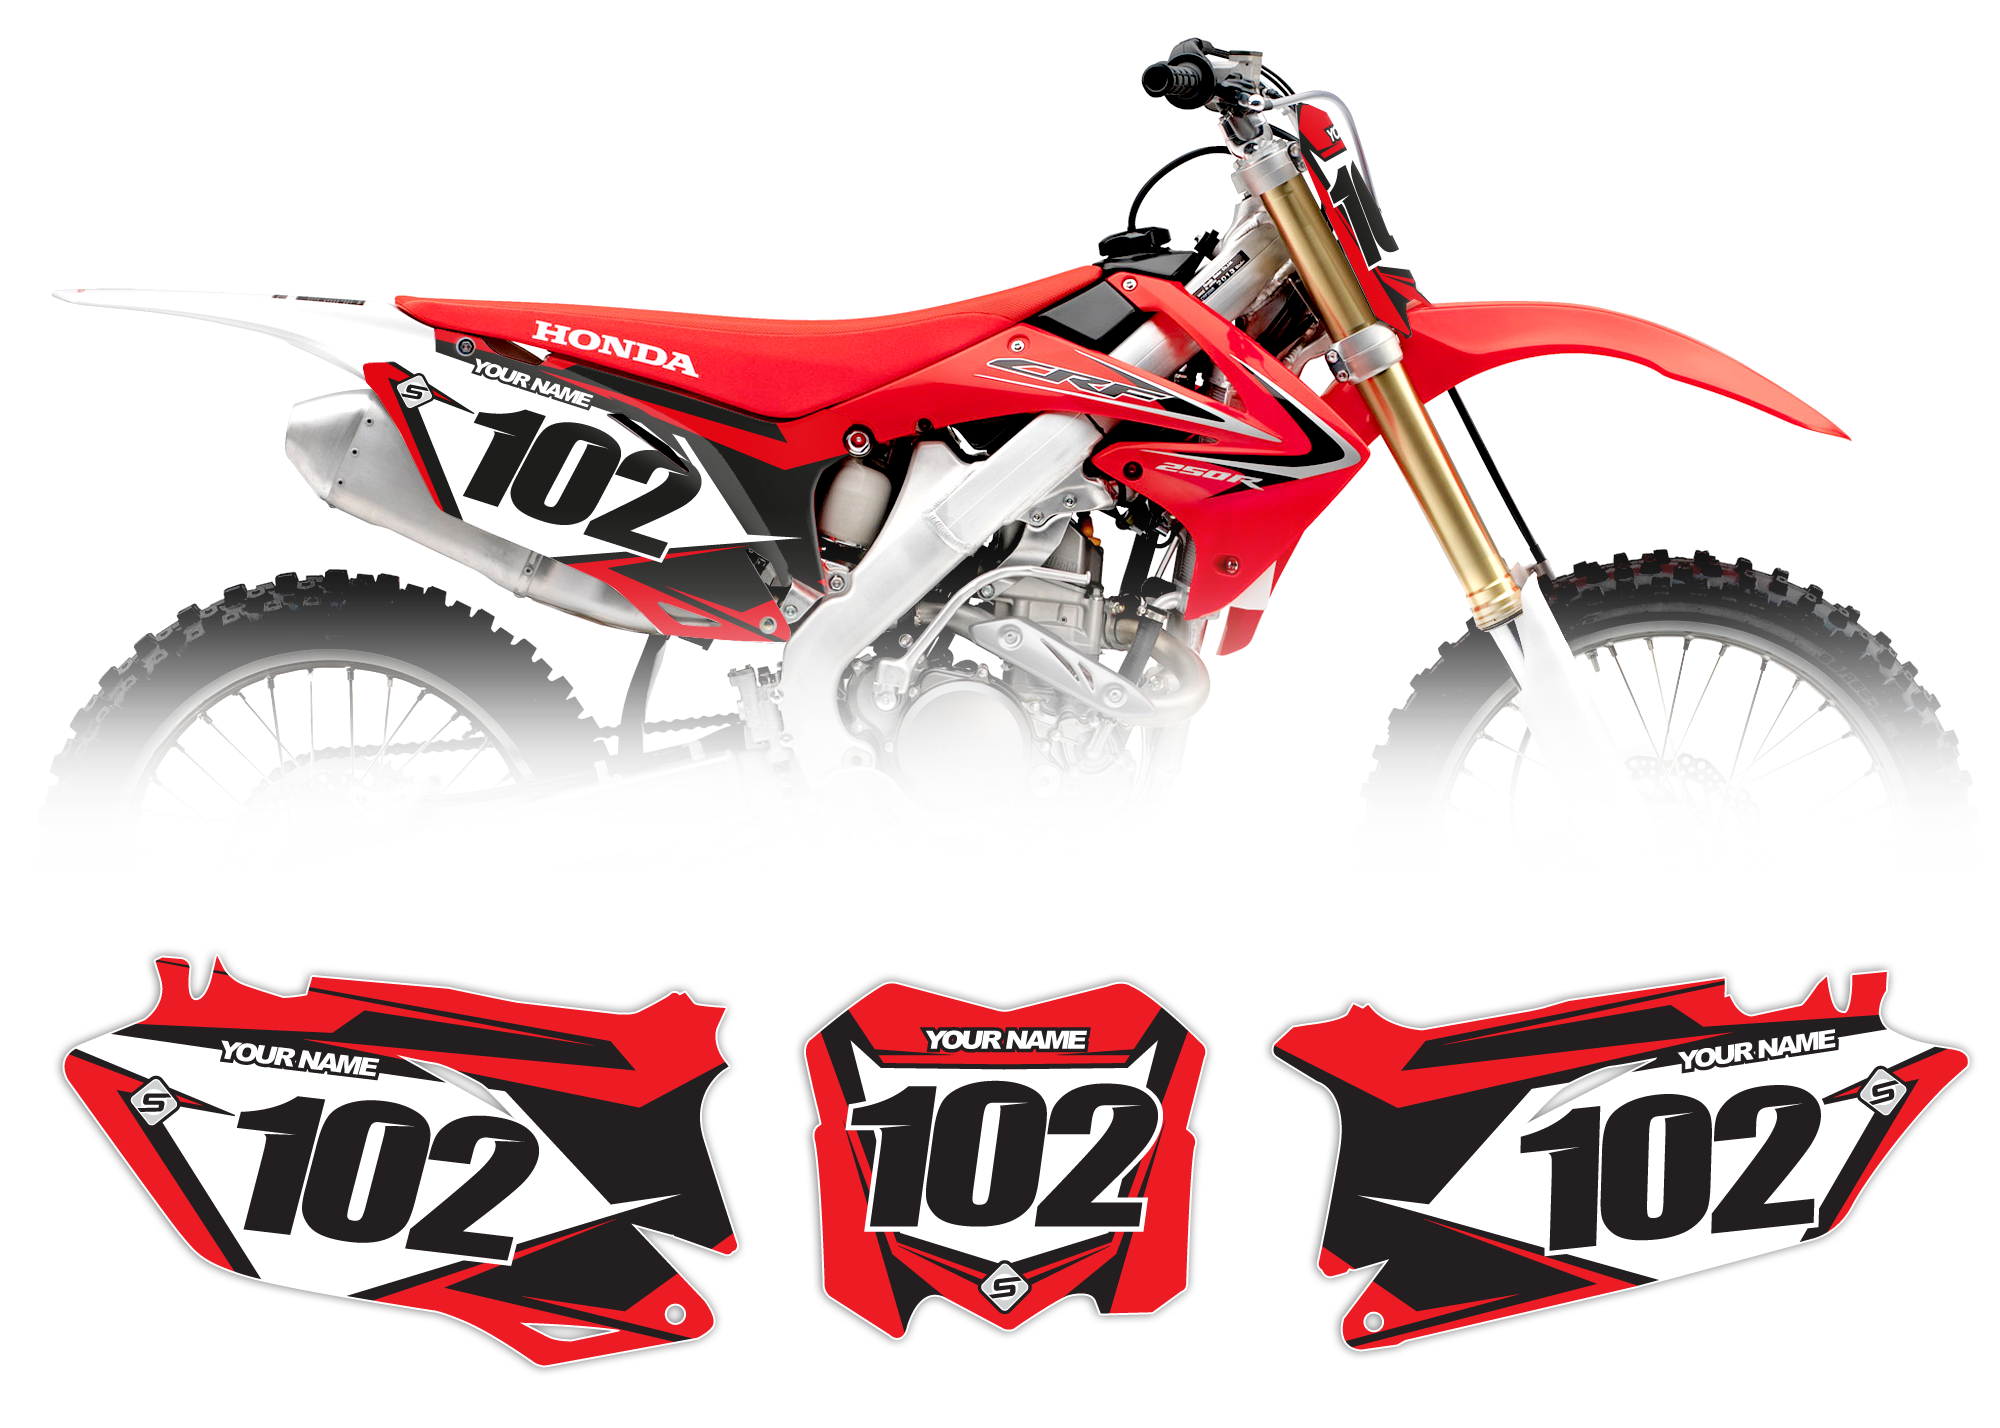 125cc motorcycle xrm 125 s4 series honda backgrounds